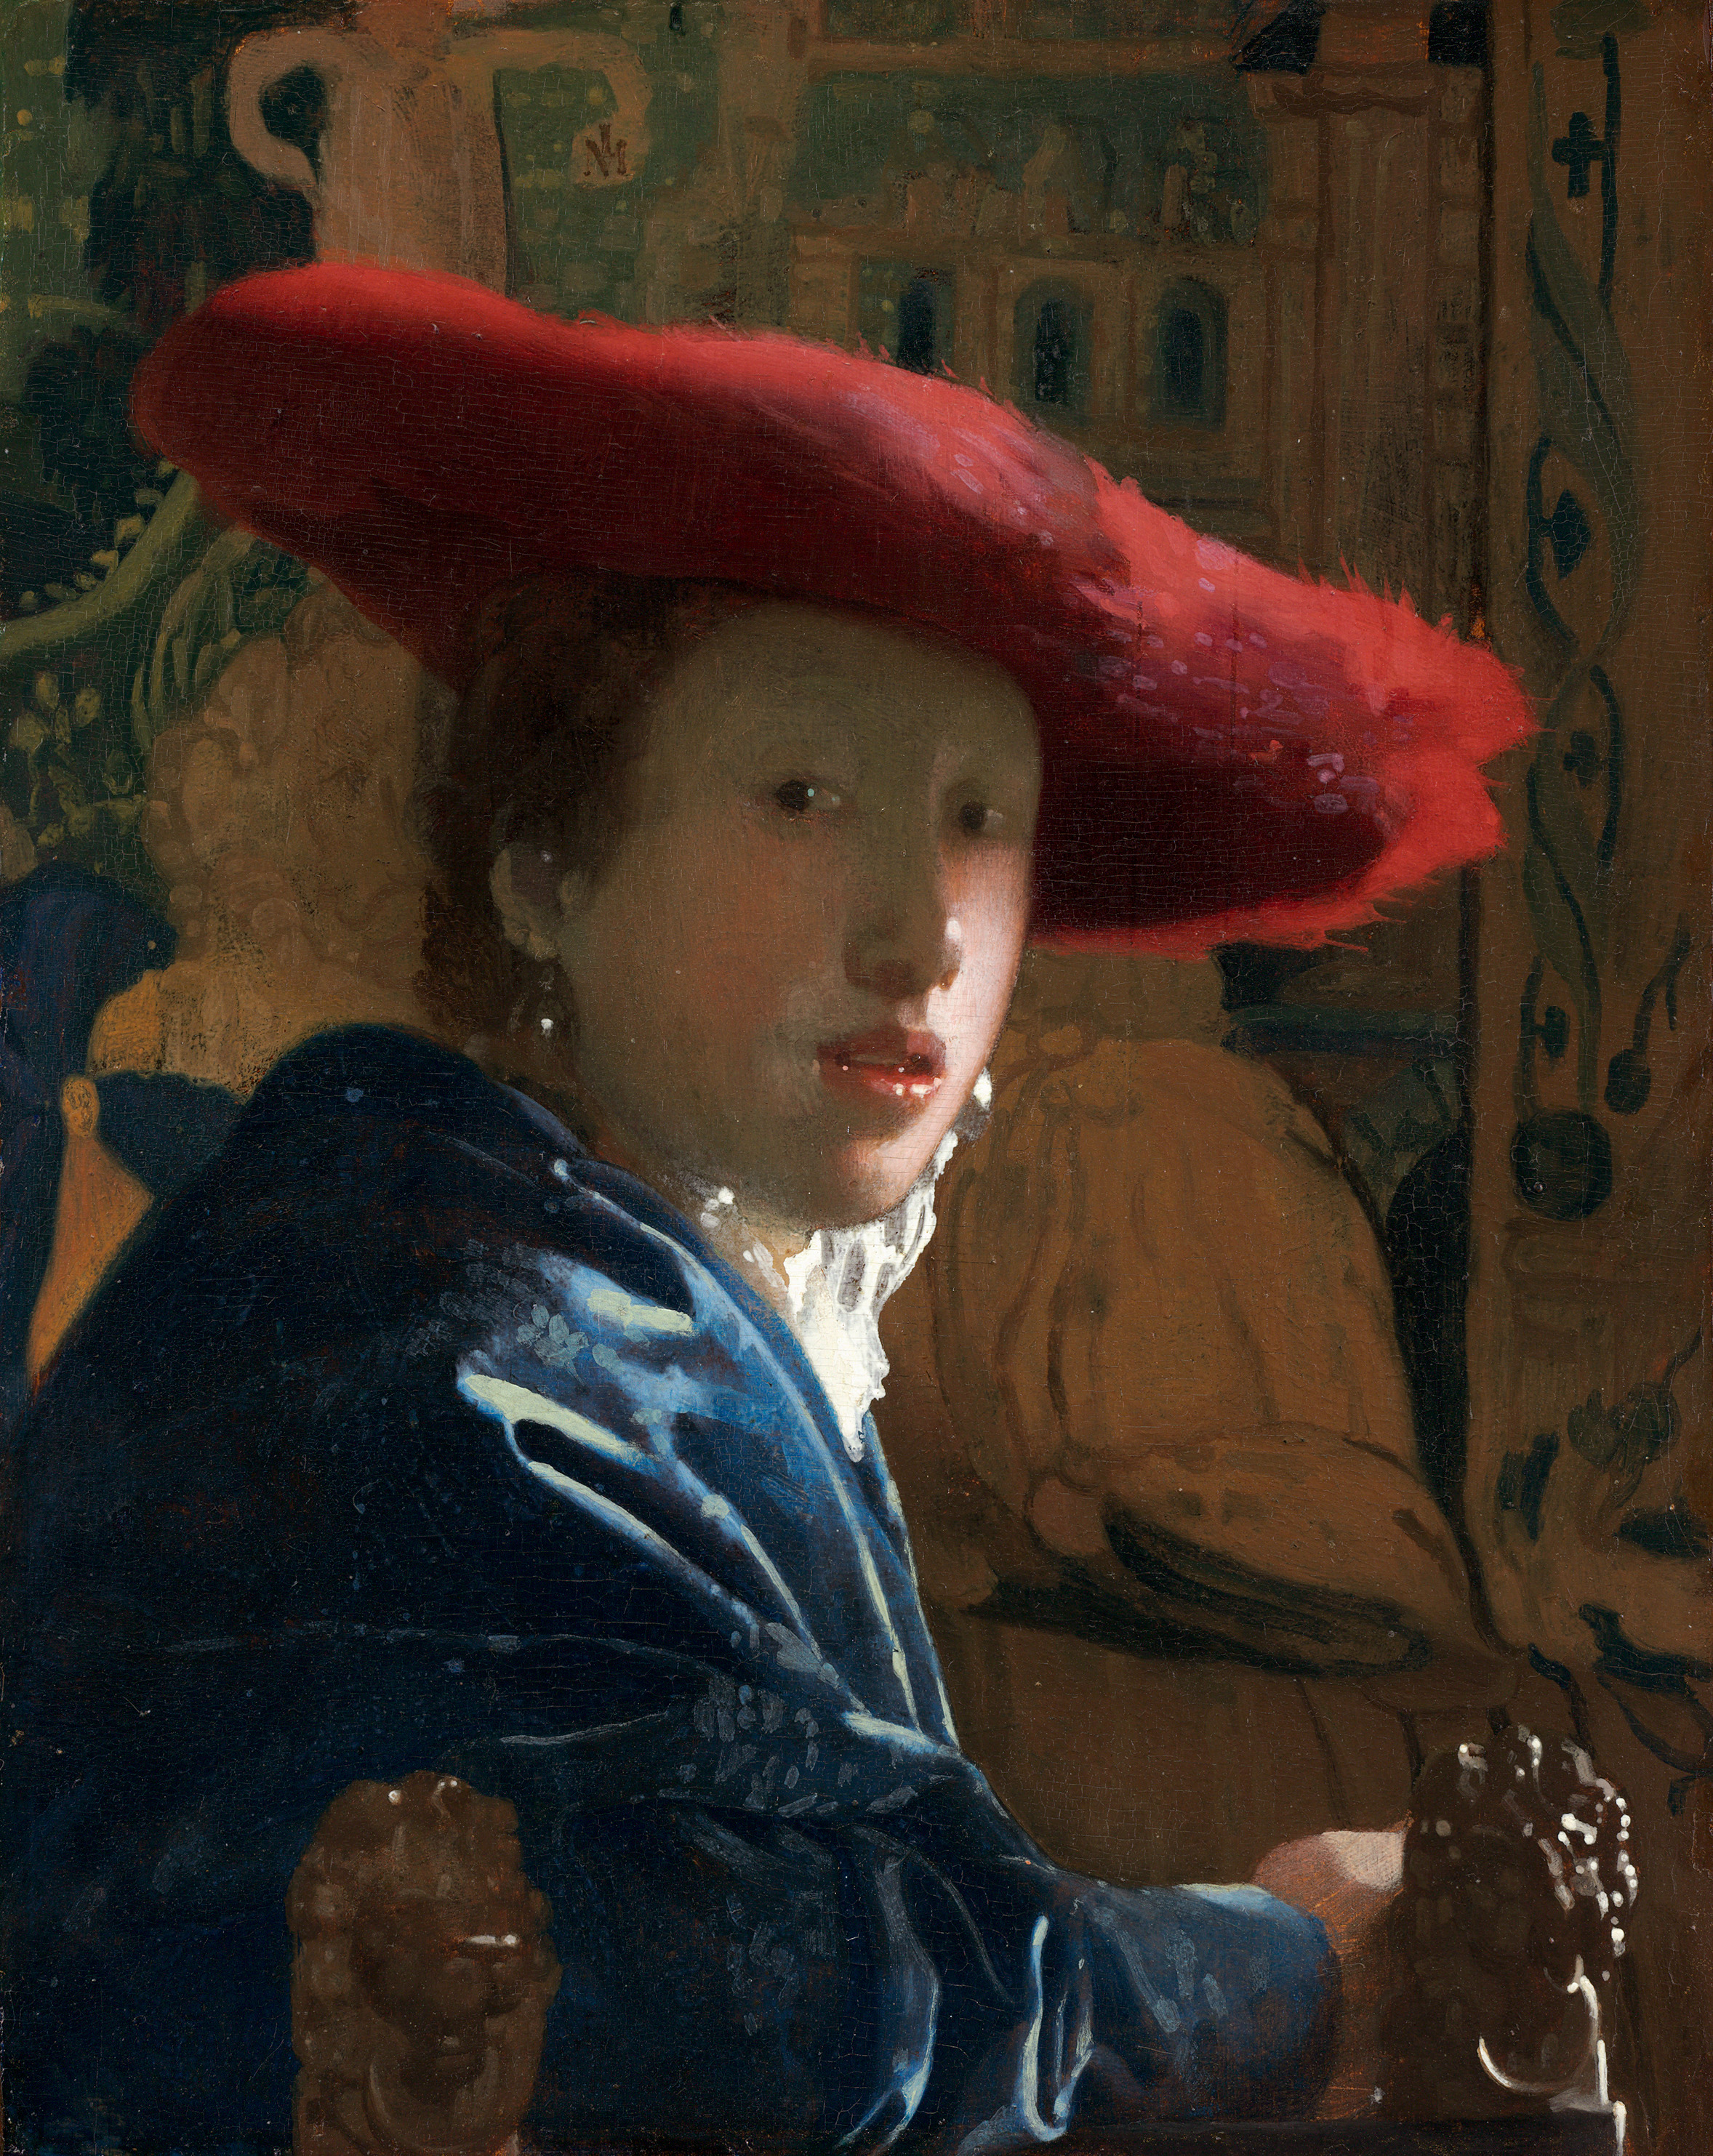 Girl with a Red Hat, Johannes Vermeer, 1665